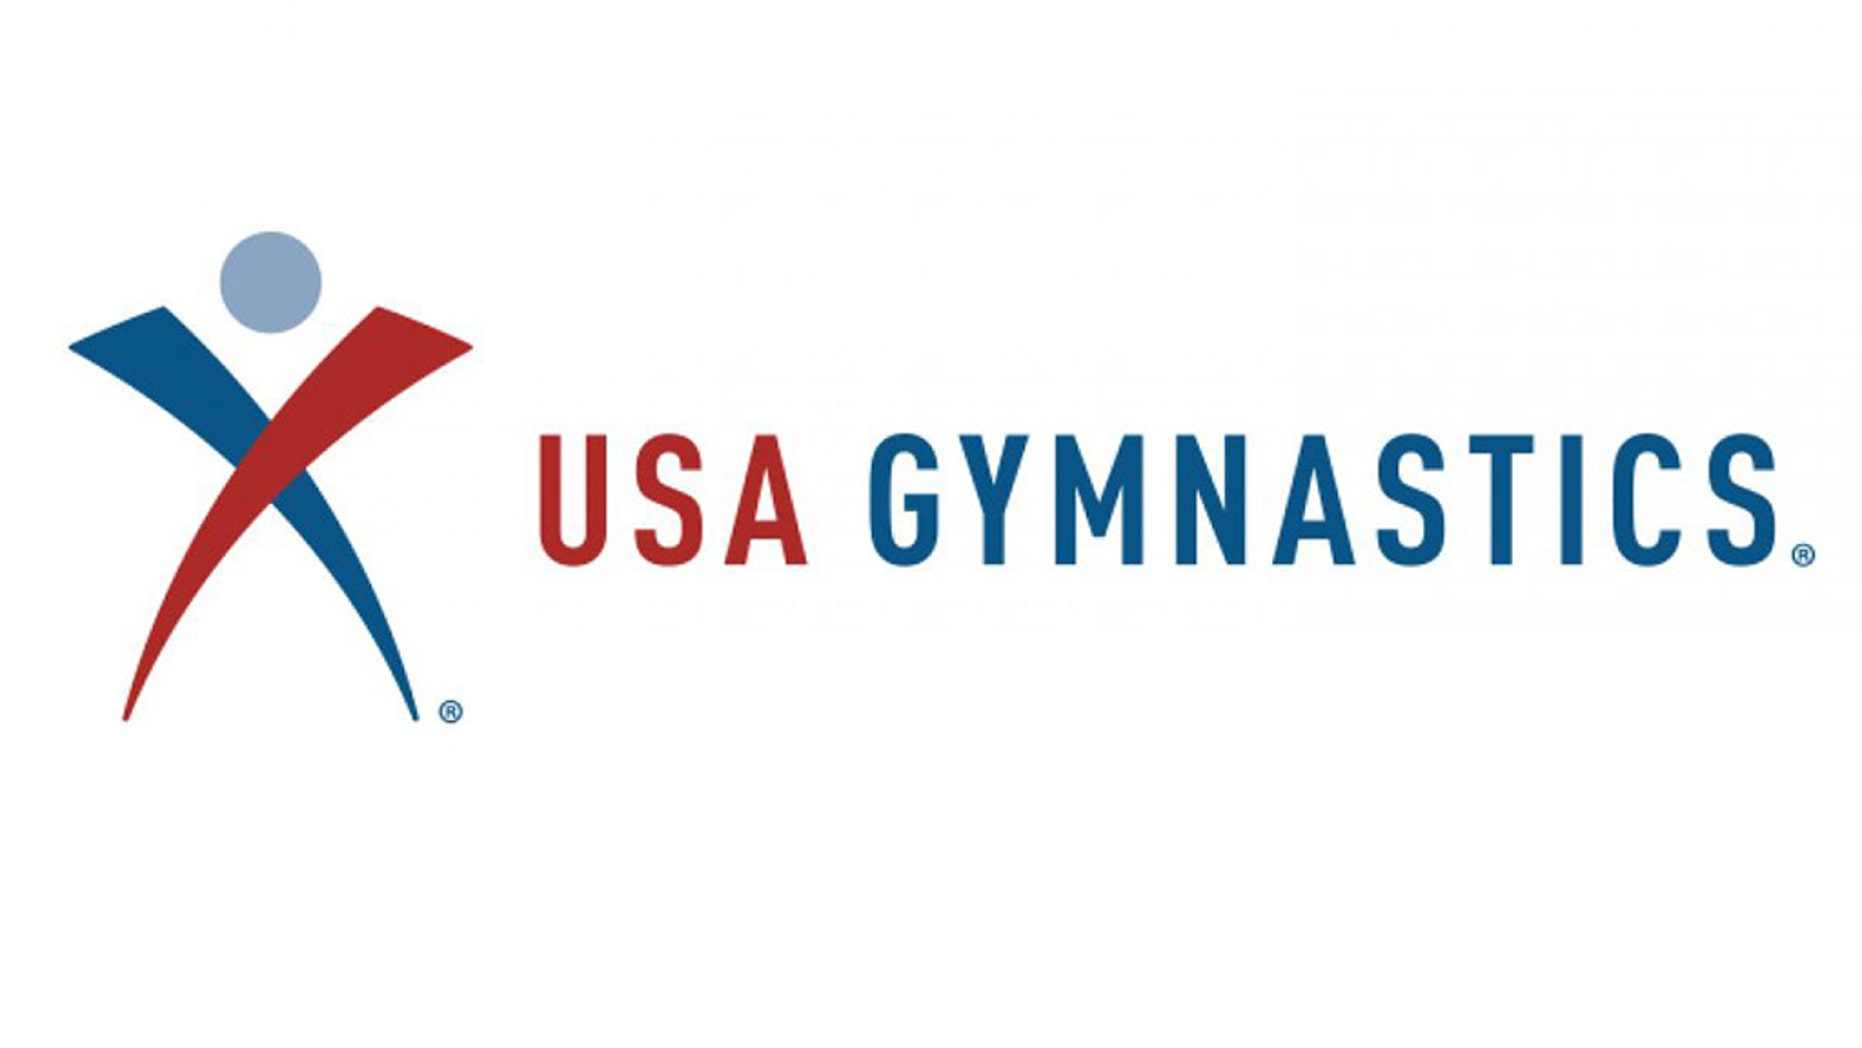 USA Gymnastics filed a petition for Chapter 11 bankruptcy on Wednesday.